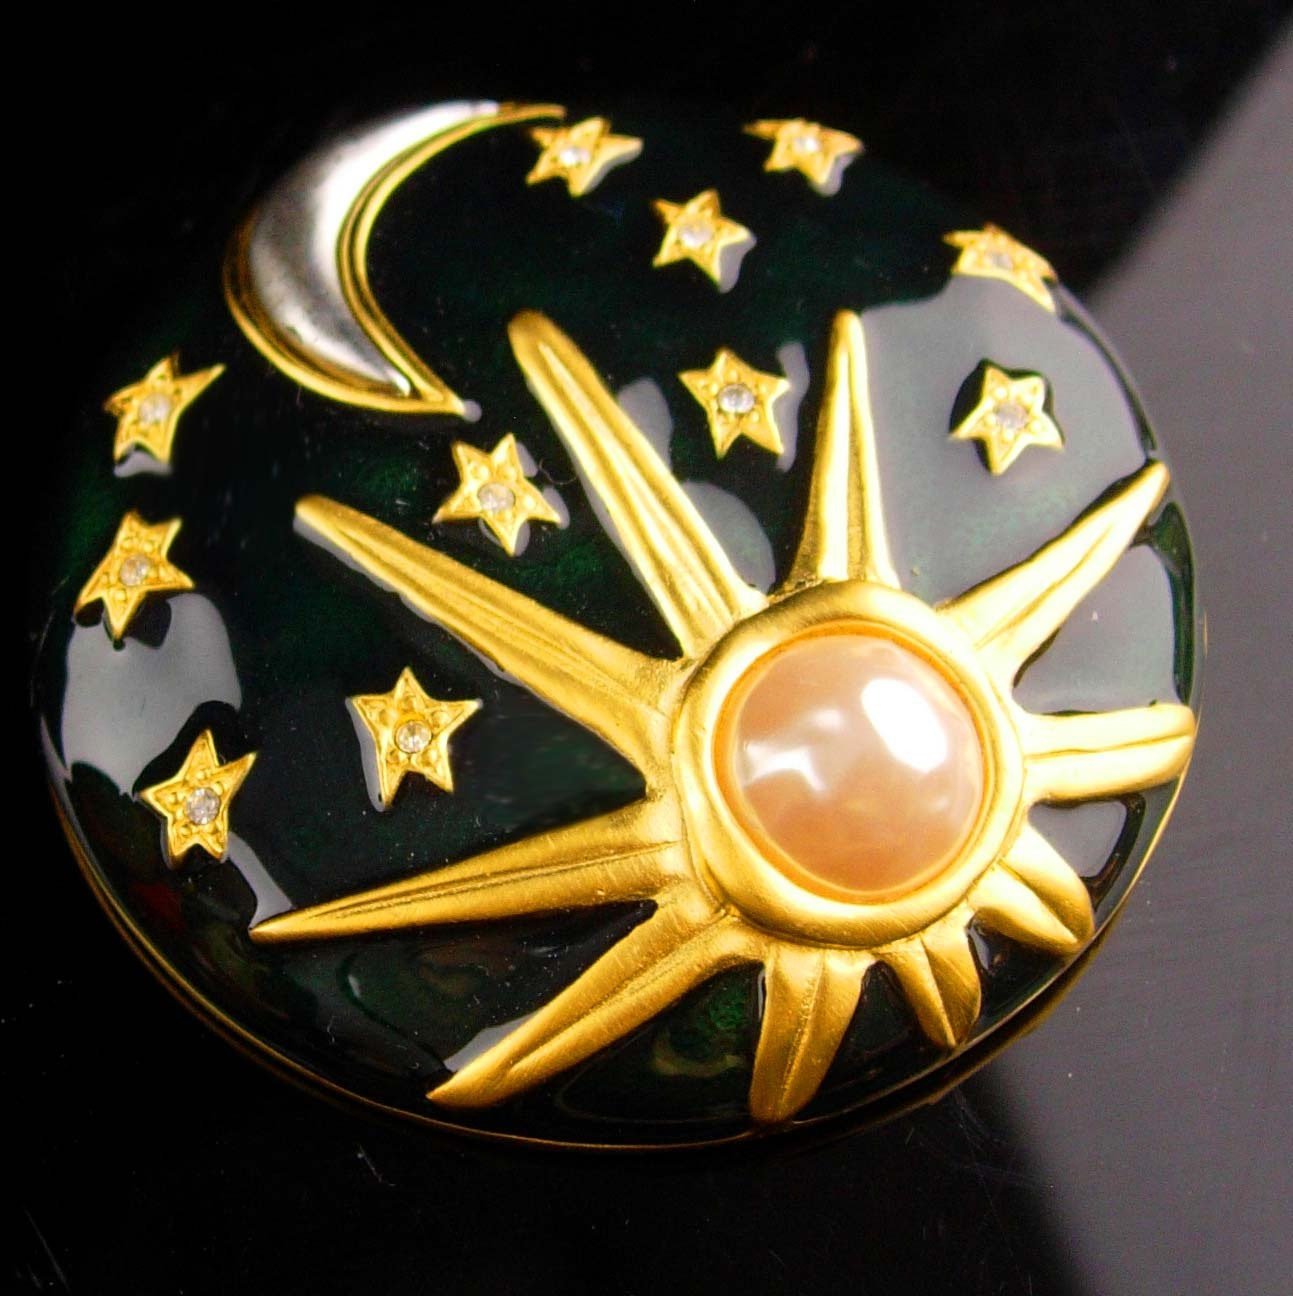 Karl Lagerfeld brooch - Sun Moon Stars Enamel Pin - Vintage couture jewelry - go